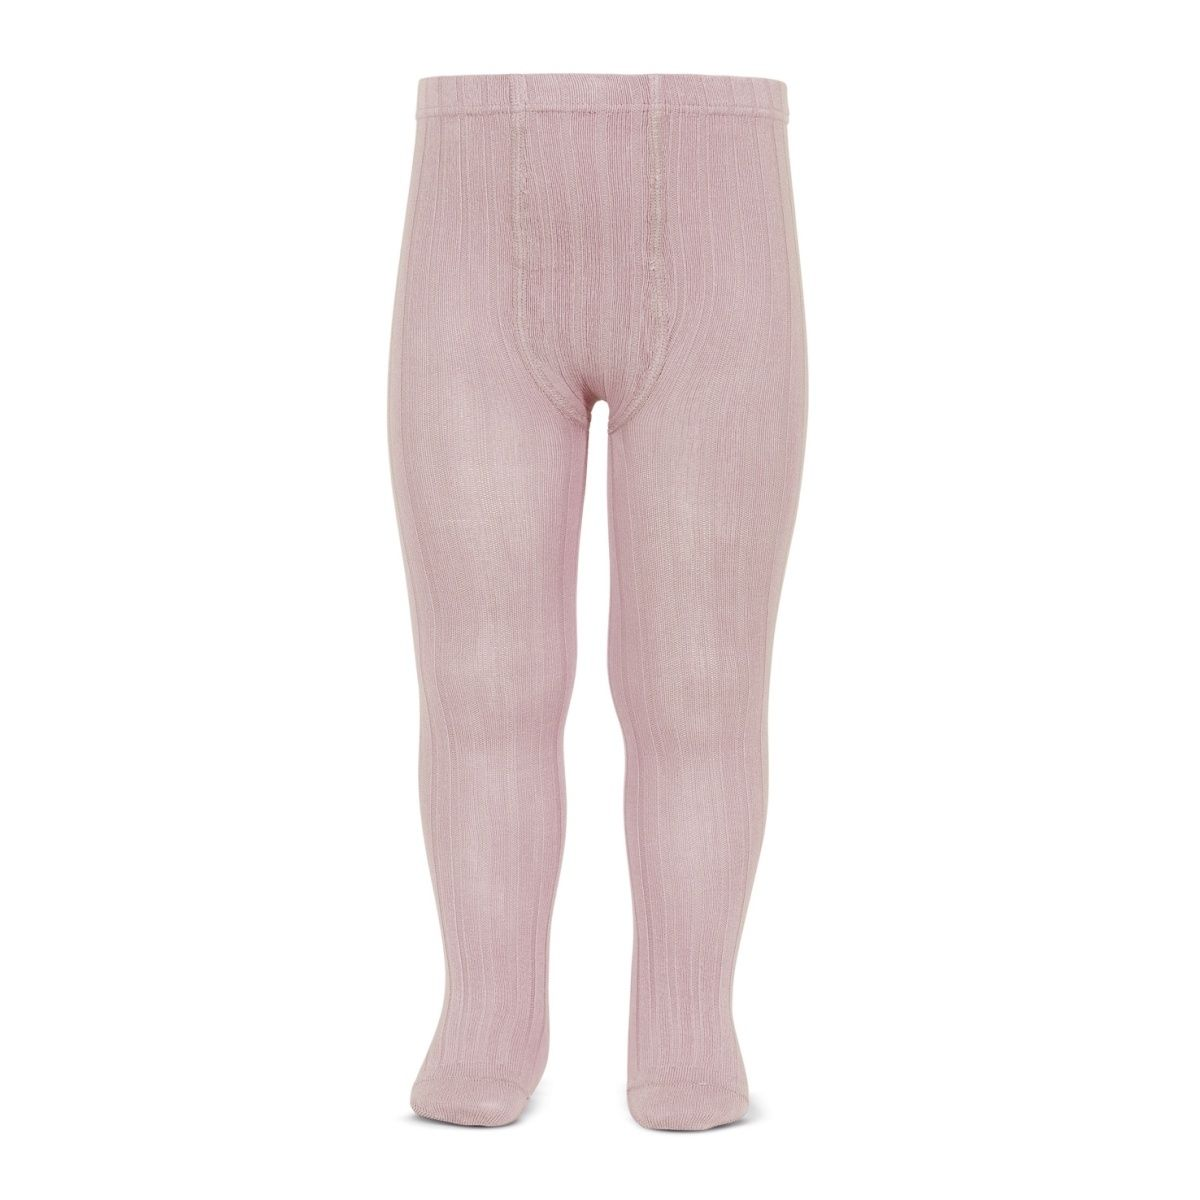 Wide Ribbed Cotton Tights pale pink - Condor